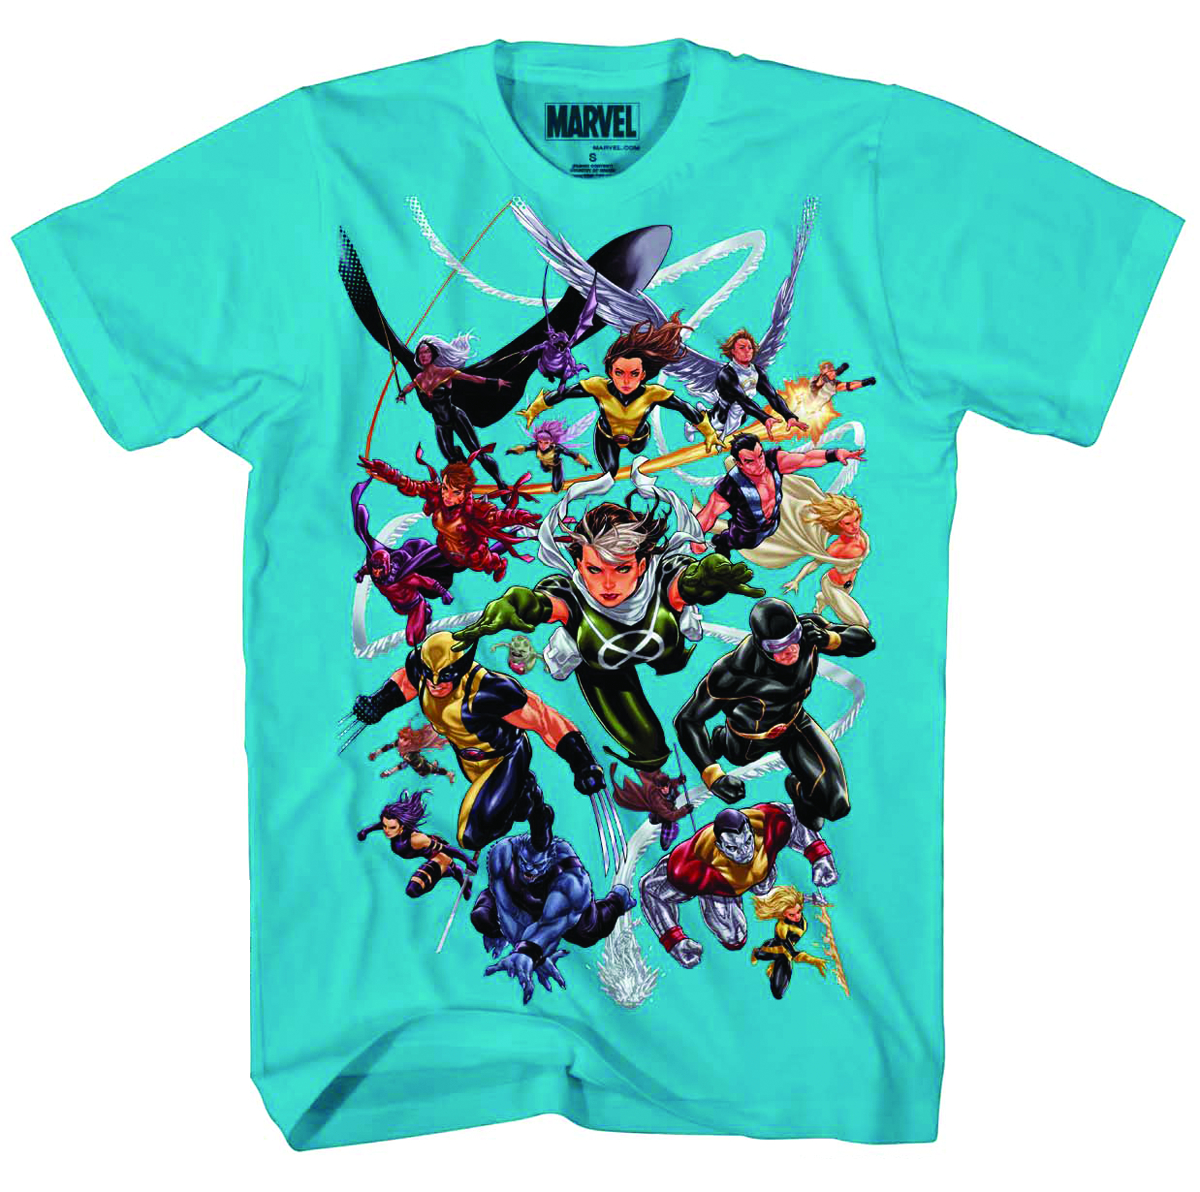 X-MEN FLYING FORWARD PX TURQ T/S XXL